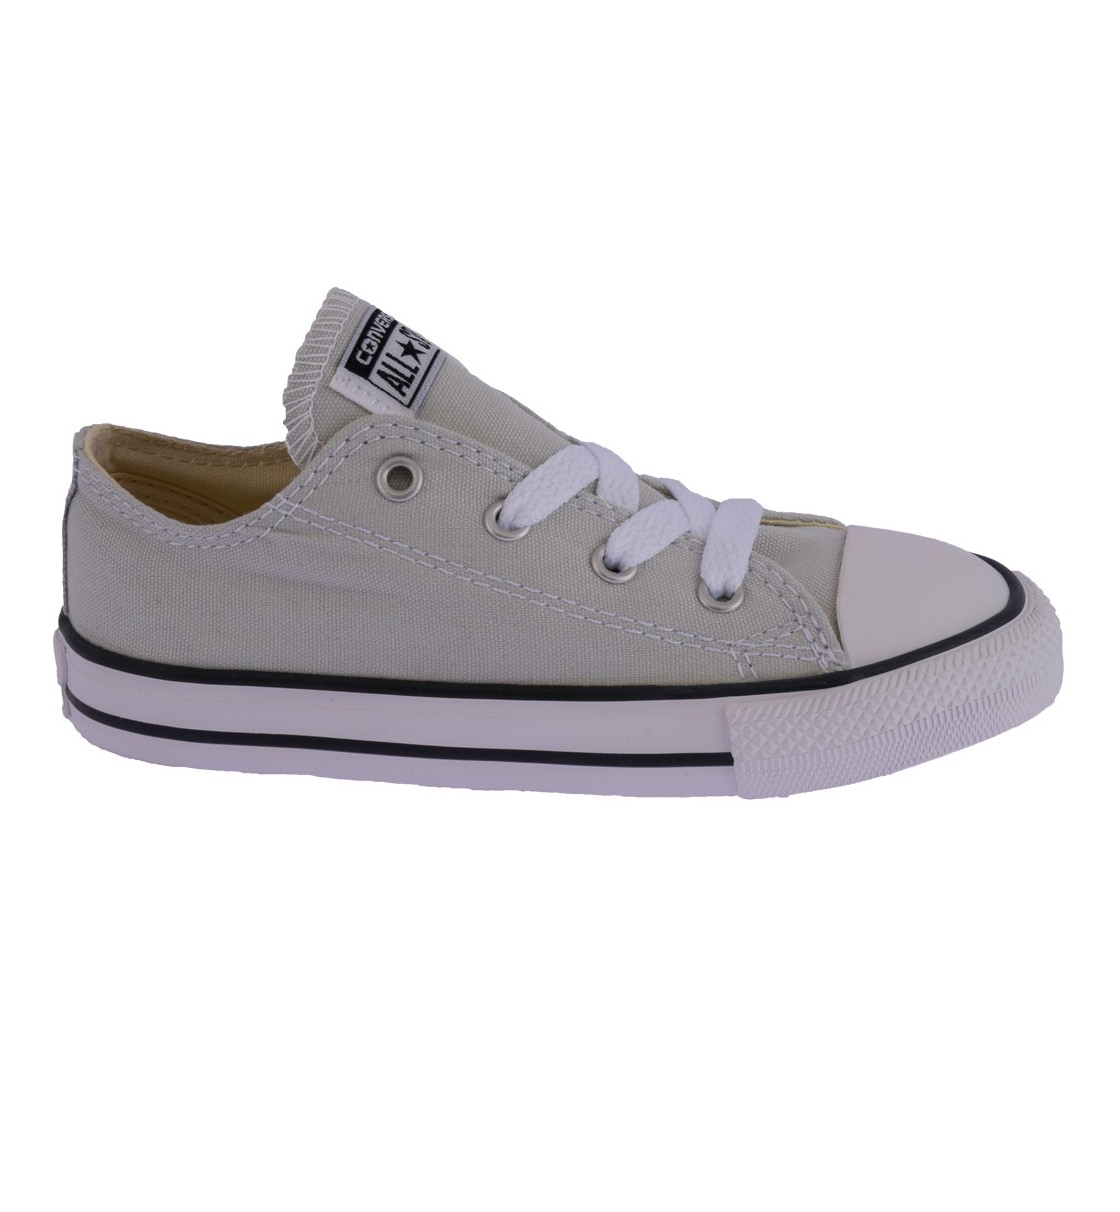 Converse Unisex Παπούτσι Μόδας Chuck Taylor All Star OX 751179C